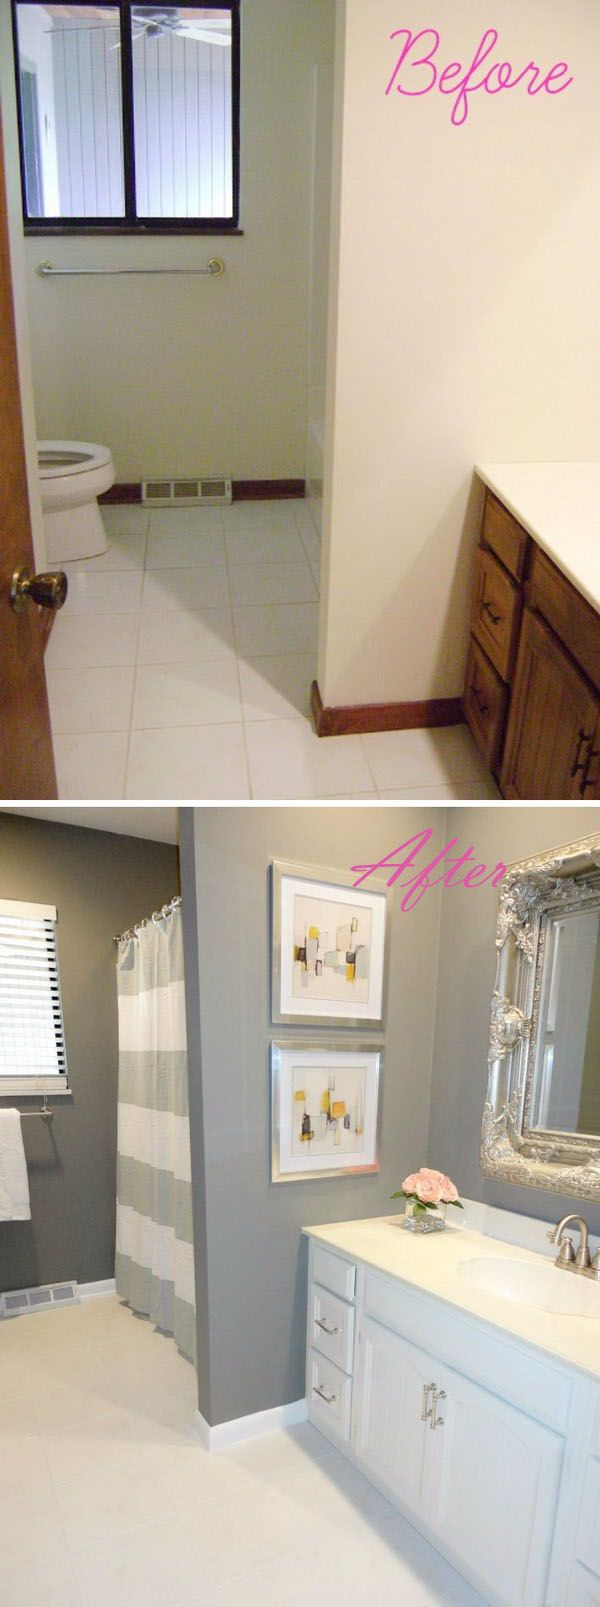 Before and After: 20+ Awesome Bathroom Makeovers DIY Bathroom Remodel on a Budget.